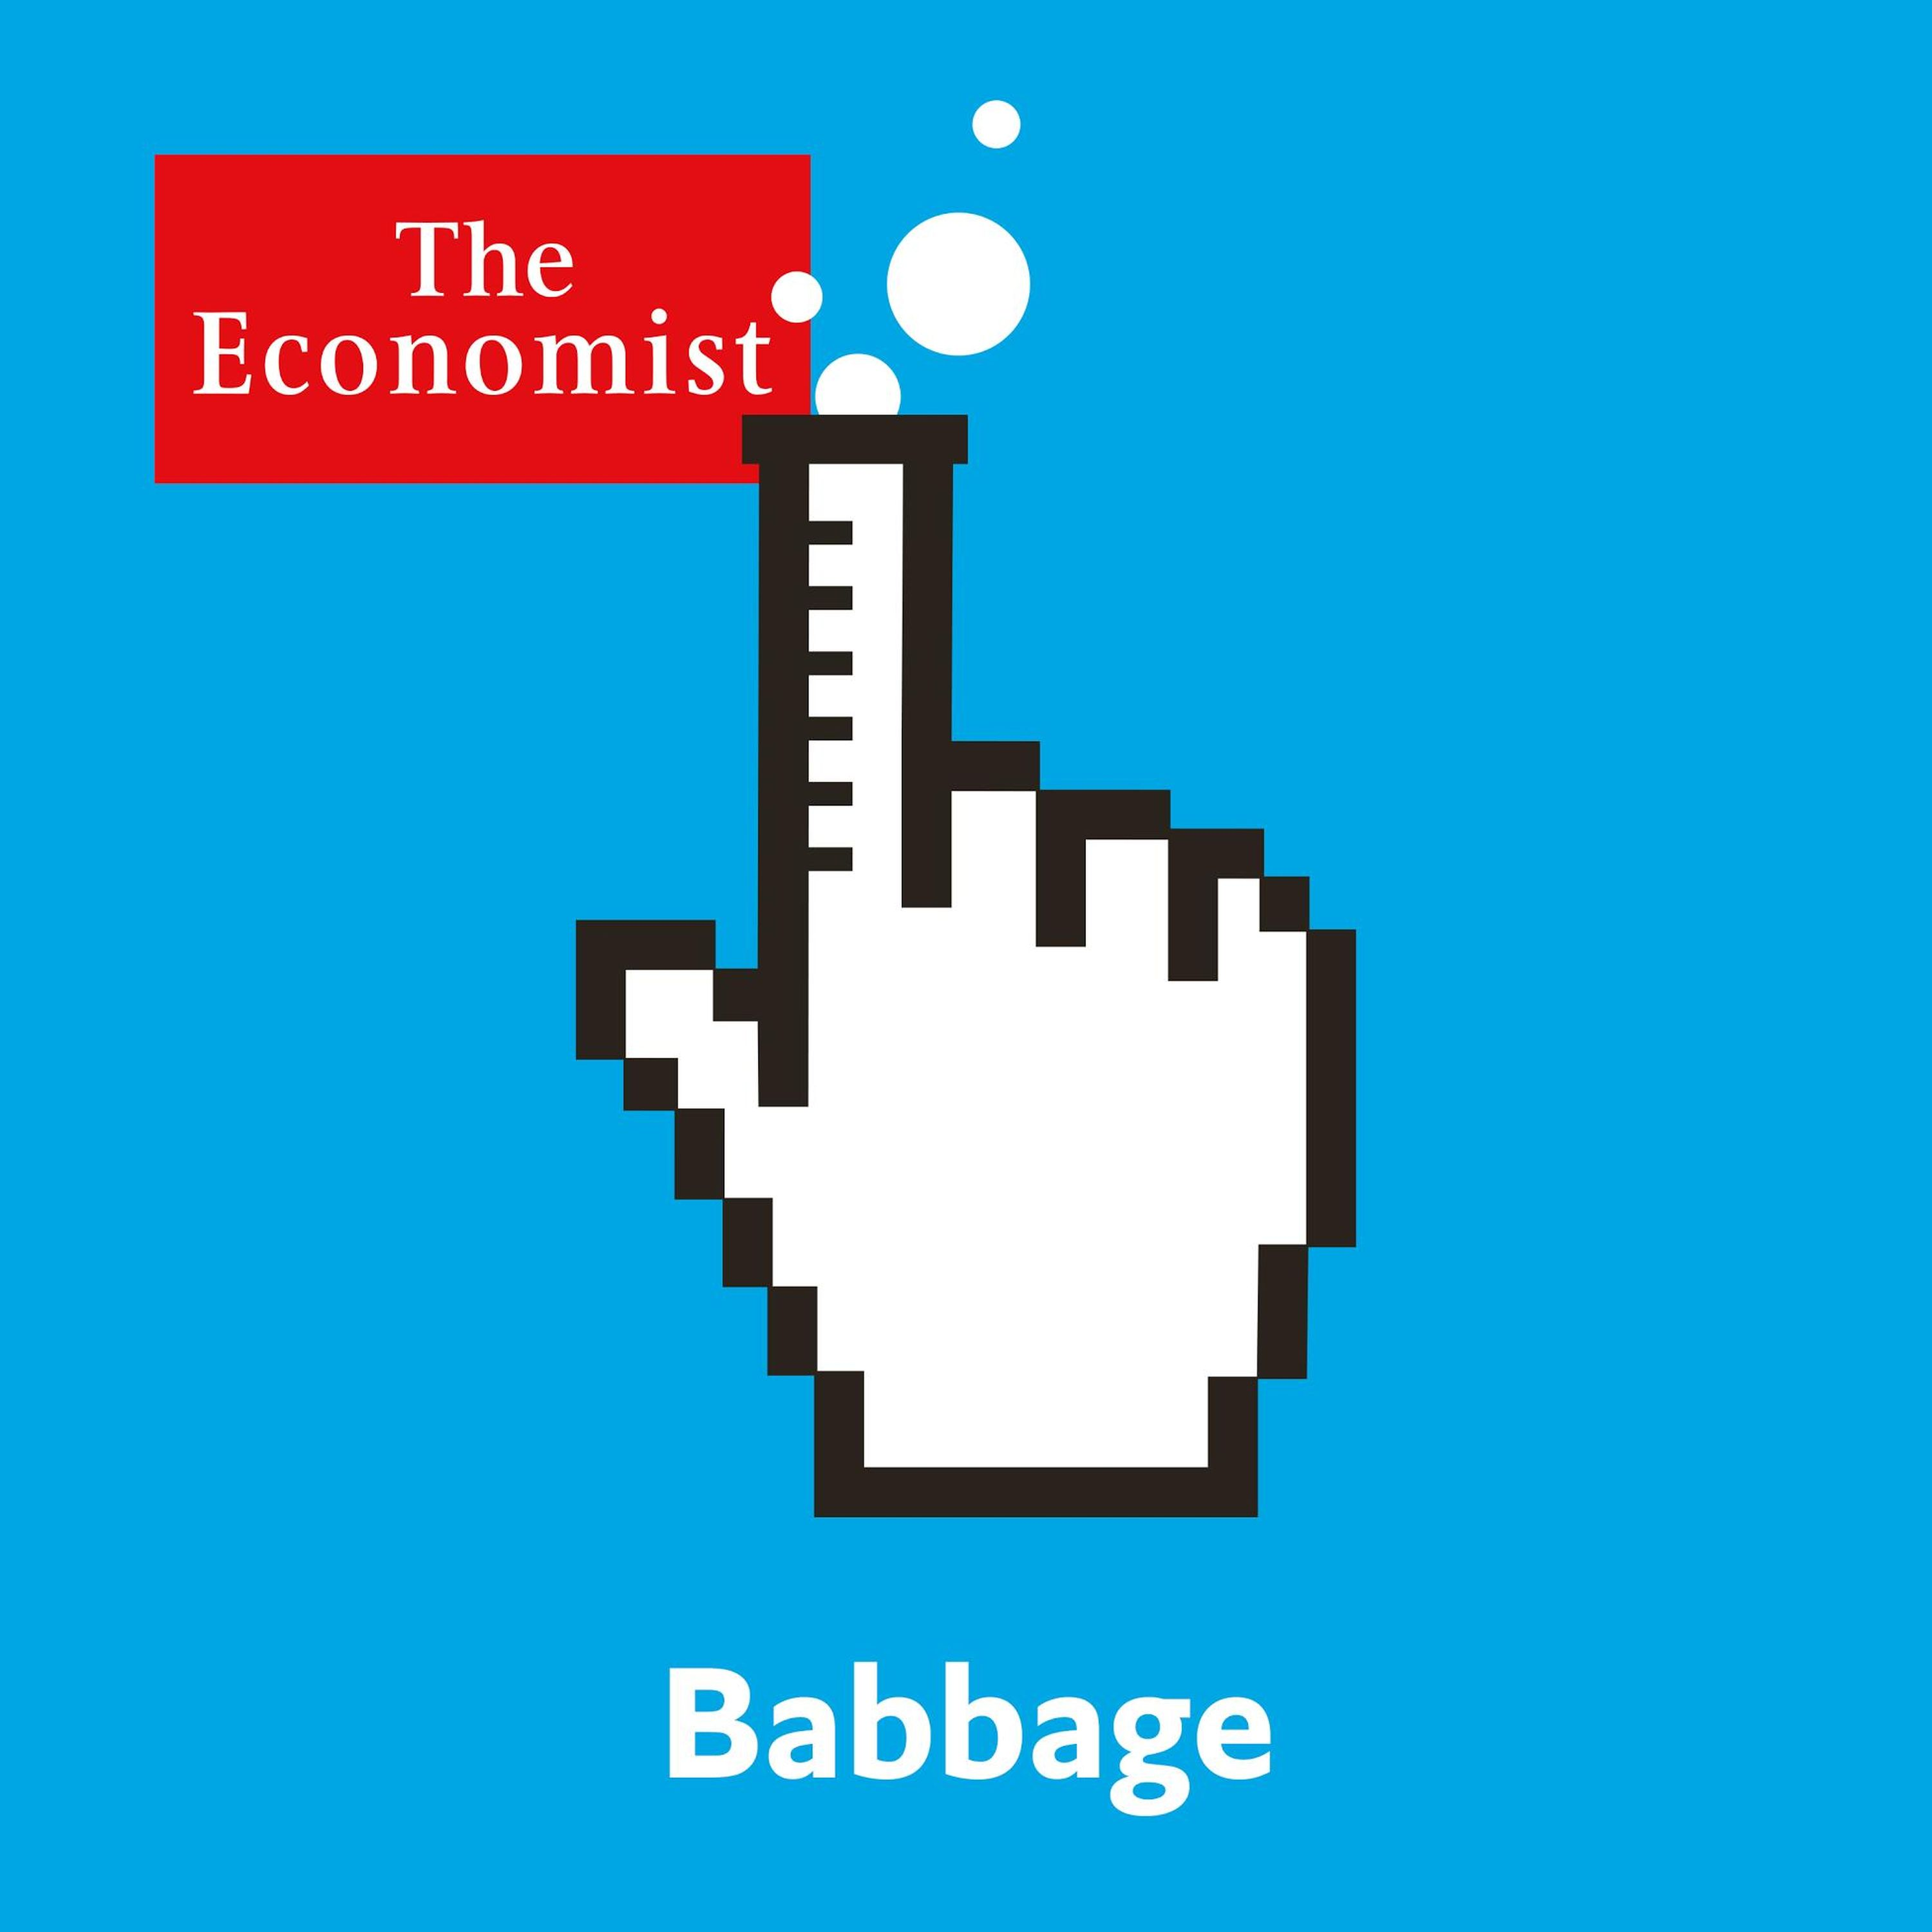 Babbage: Space invaders